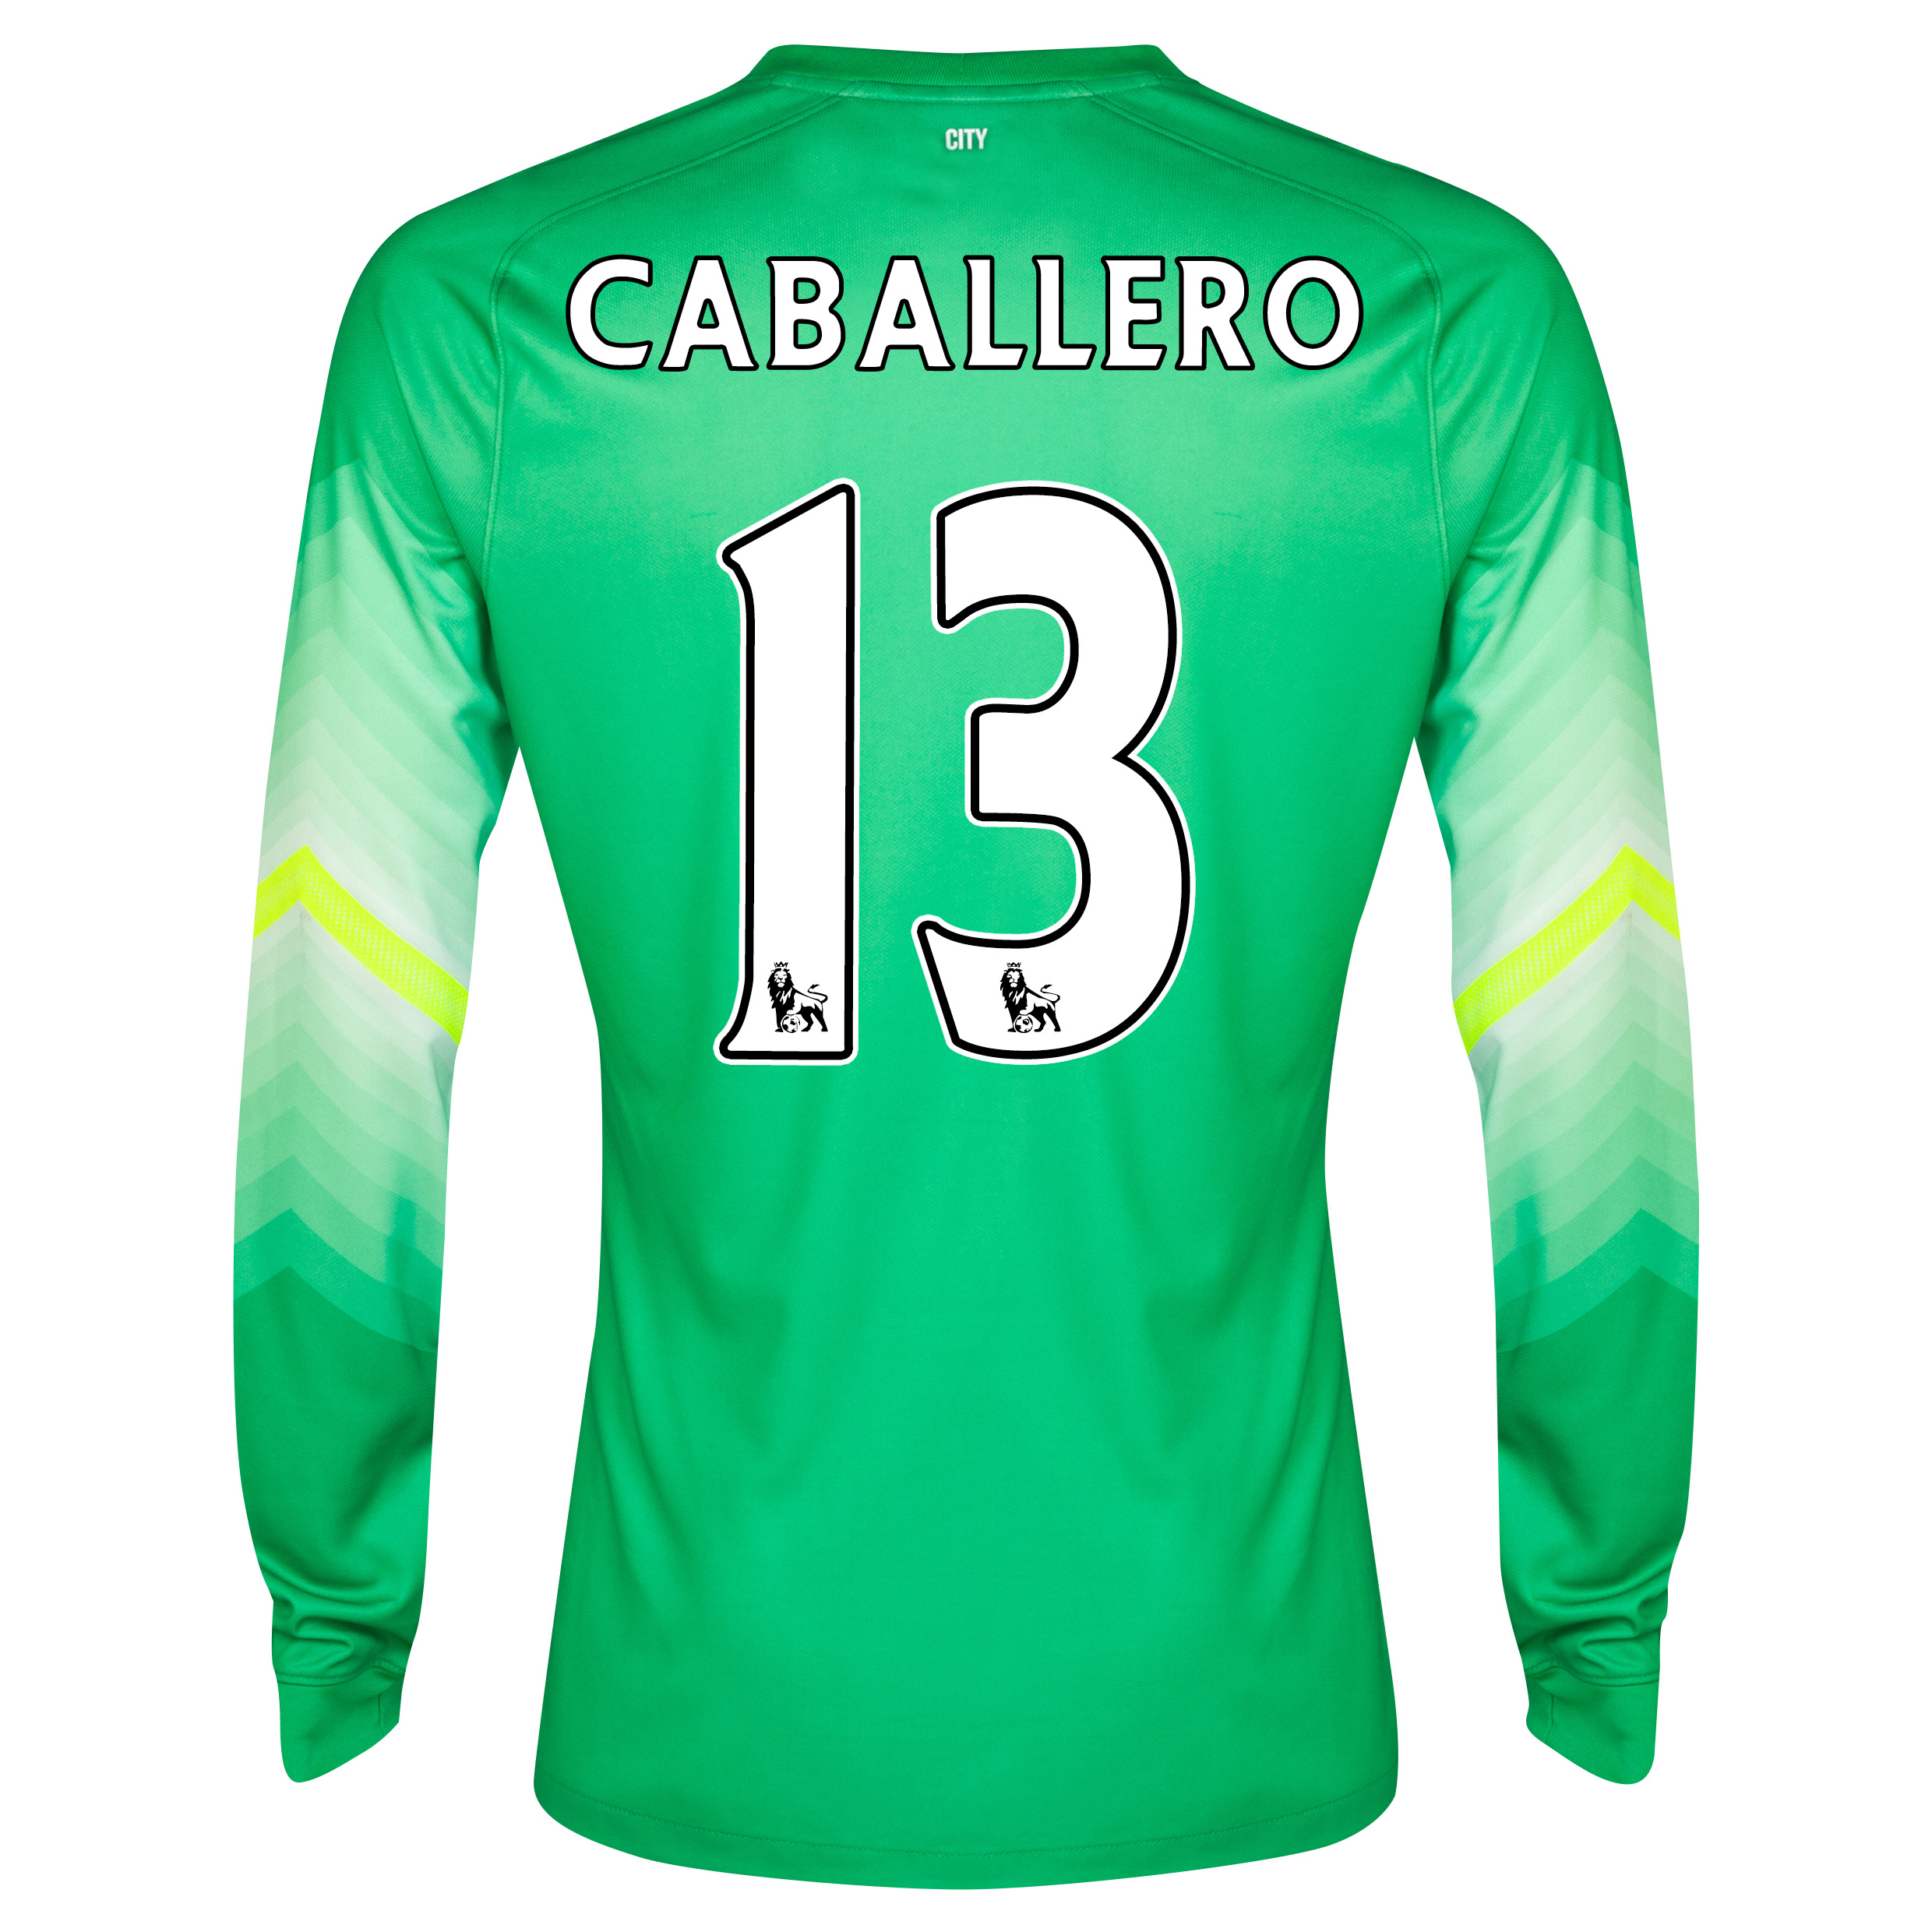 Manchester City Goalkeeper Shirt 2014/15 Lt Green with Caballero 13 printing